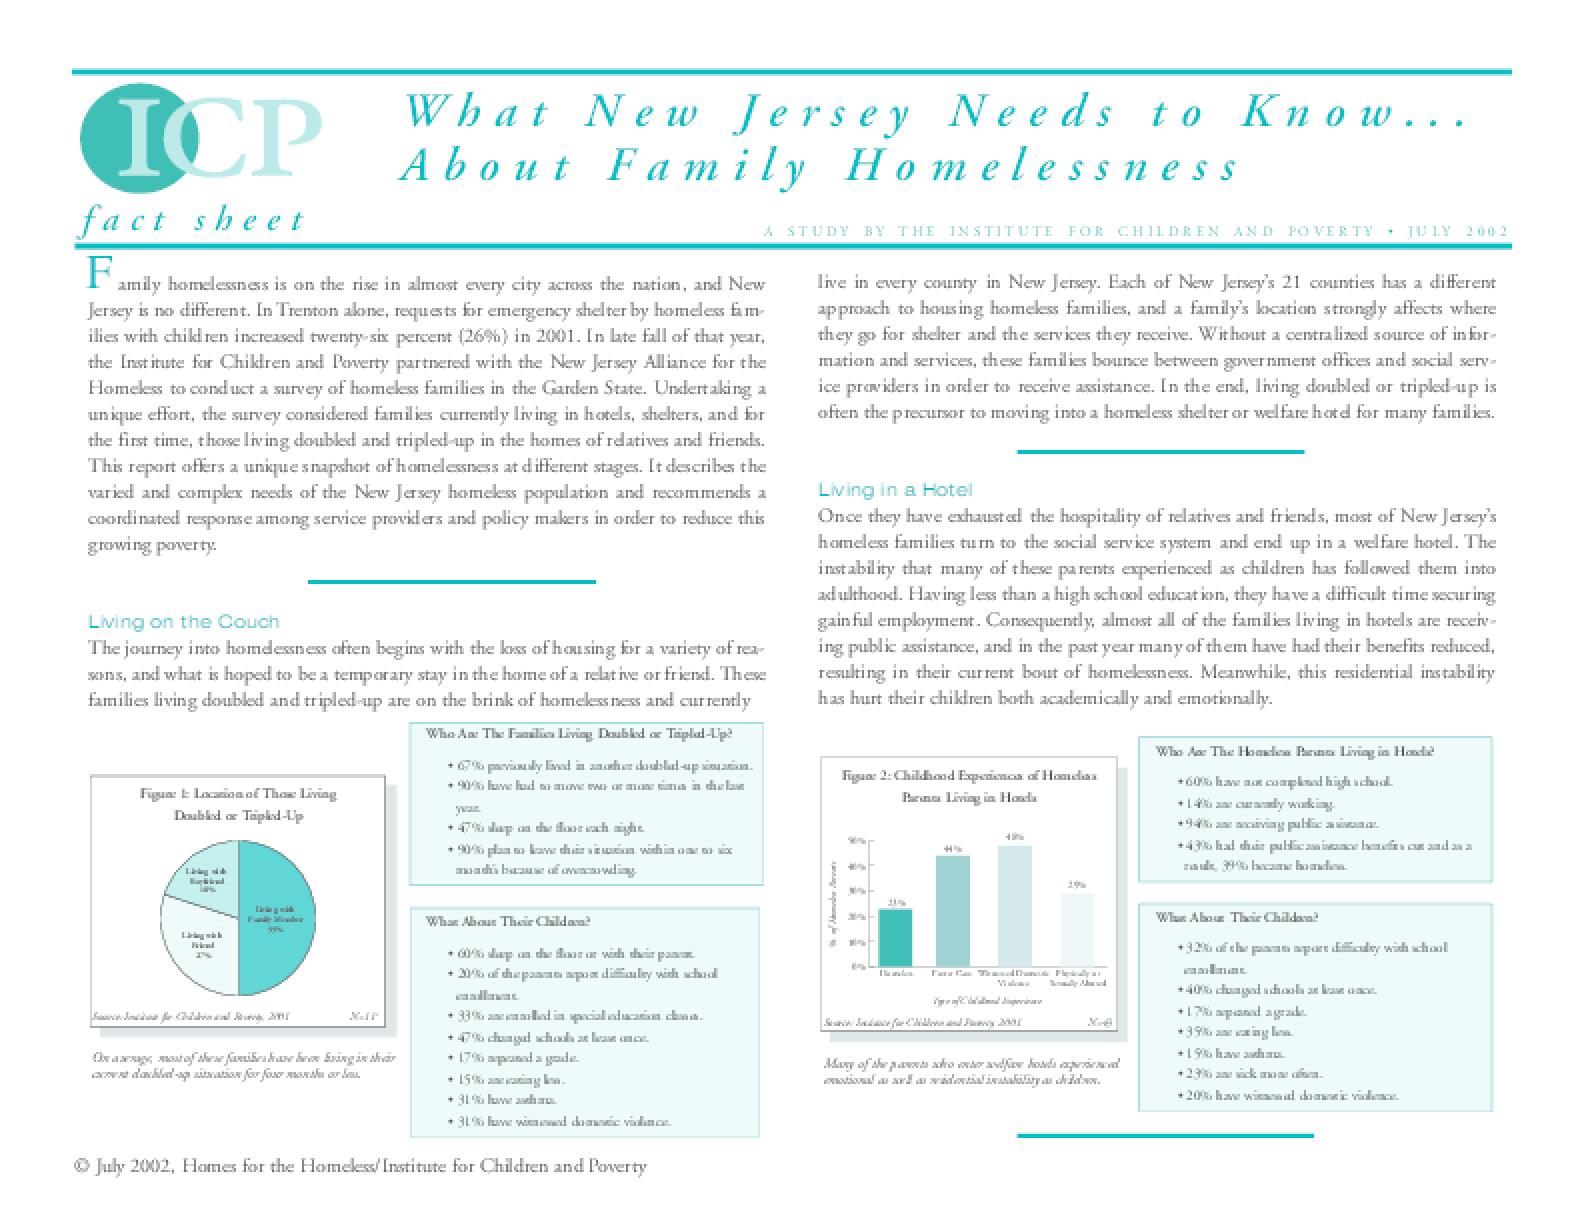 What New Jersey Needs to Know About Family Homelessness